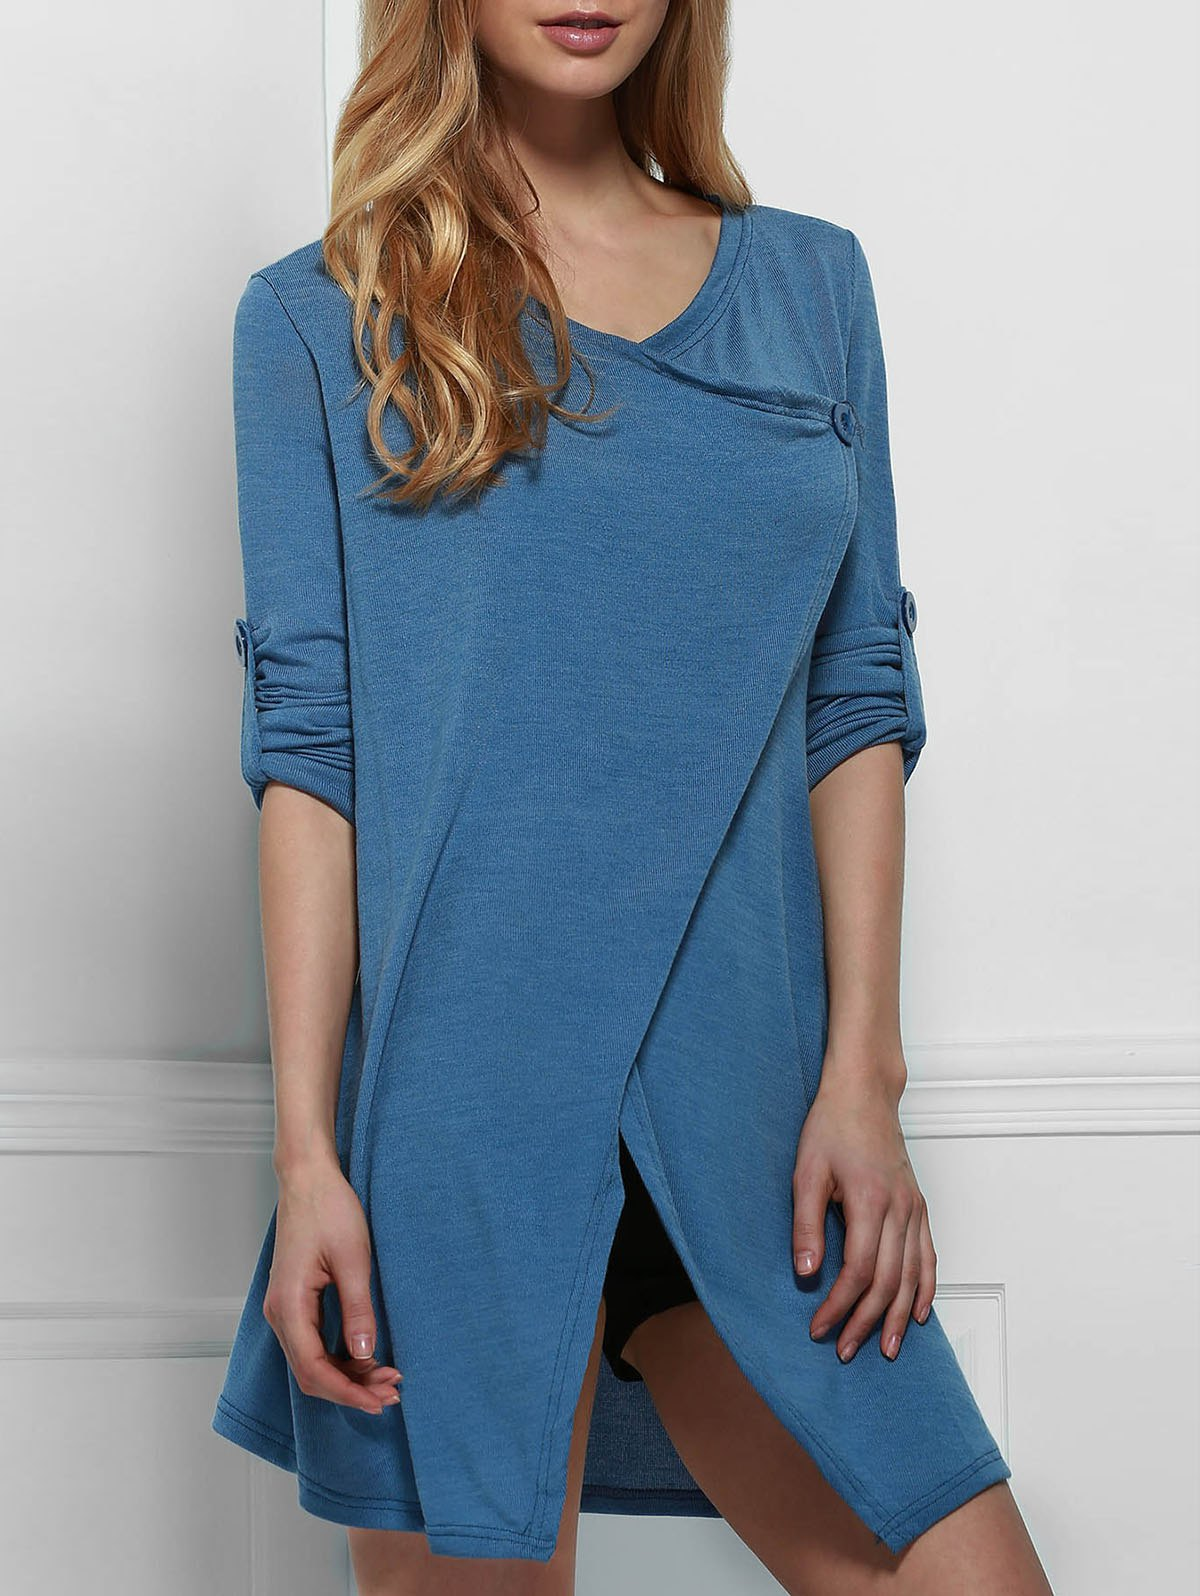 Elegant Cowl Neck Solid Color Slit Asymmetric Pullover Sweater For WomenWOMEN<br><br>Size: ONE SIZE(FIT SIZE XS TO M); Color: BLUE; Type: Pullovers; Material: Polyester; Sleeve Length: Full; Collar: Cowl Neck; Style: Fashion; Weight: 0.324kg; Package Contents: 1 x Sweater;